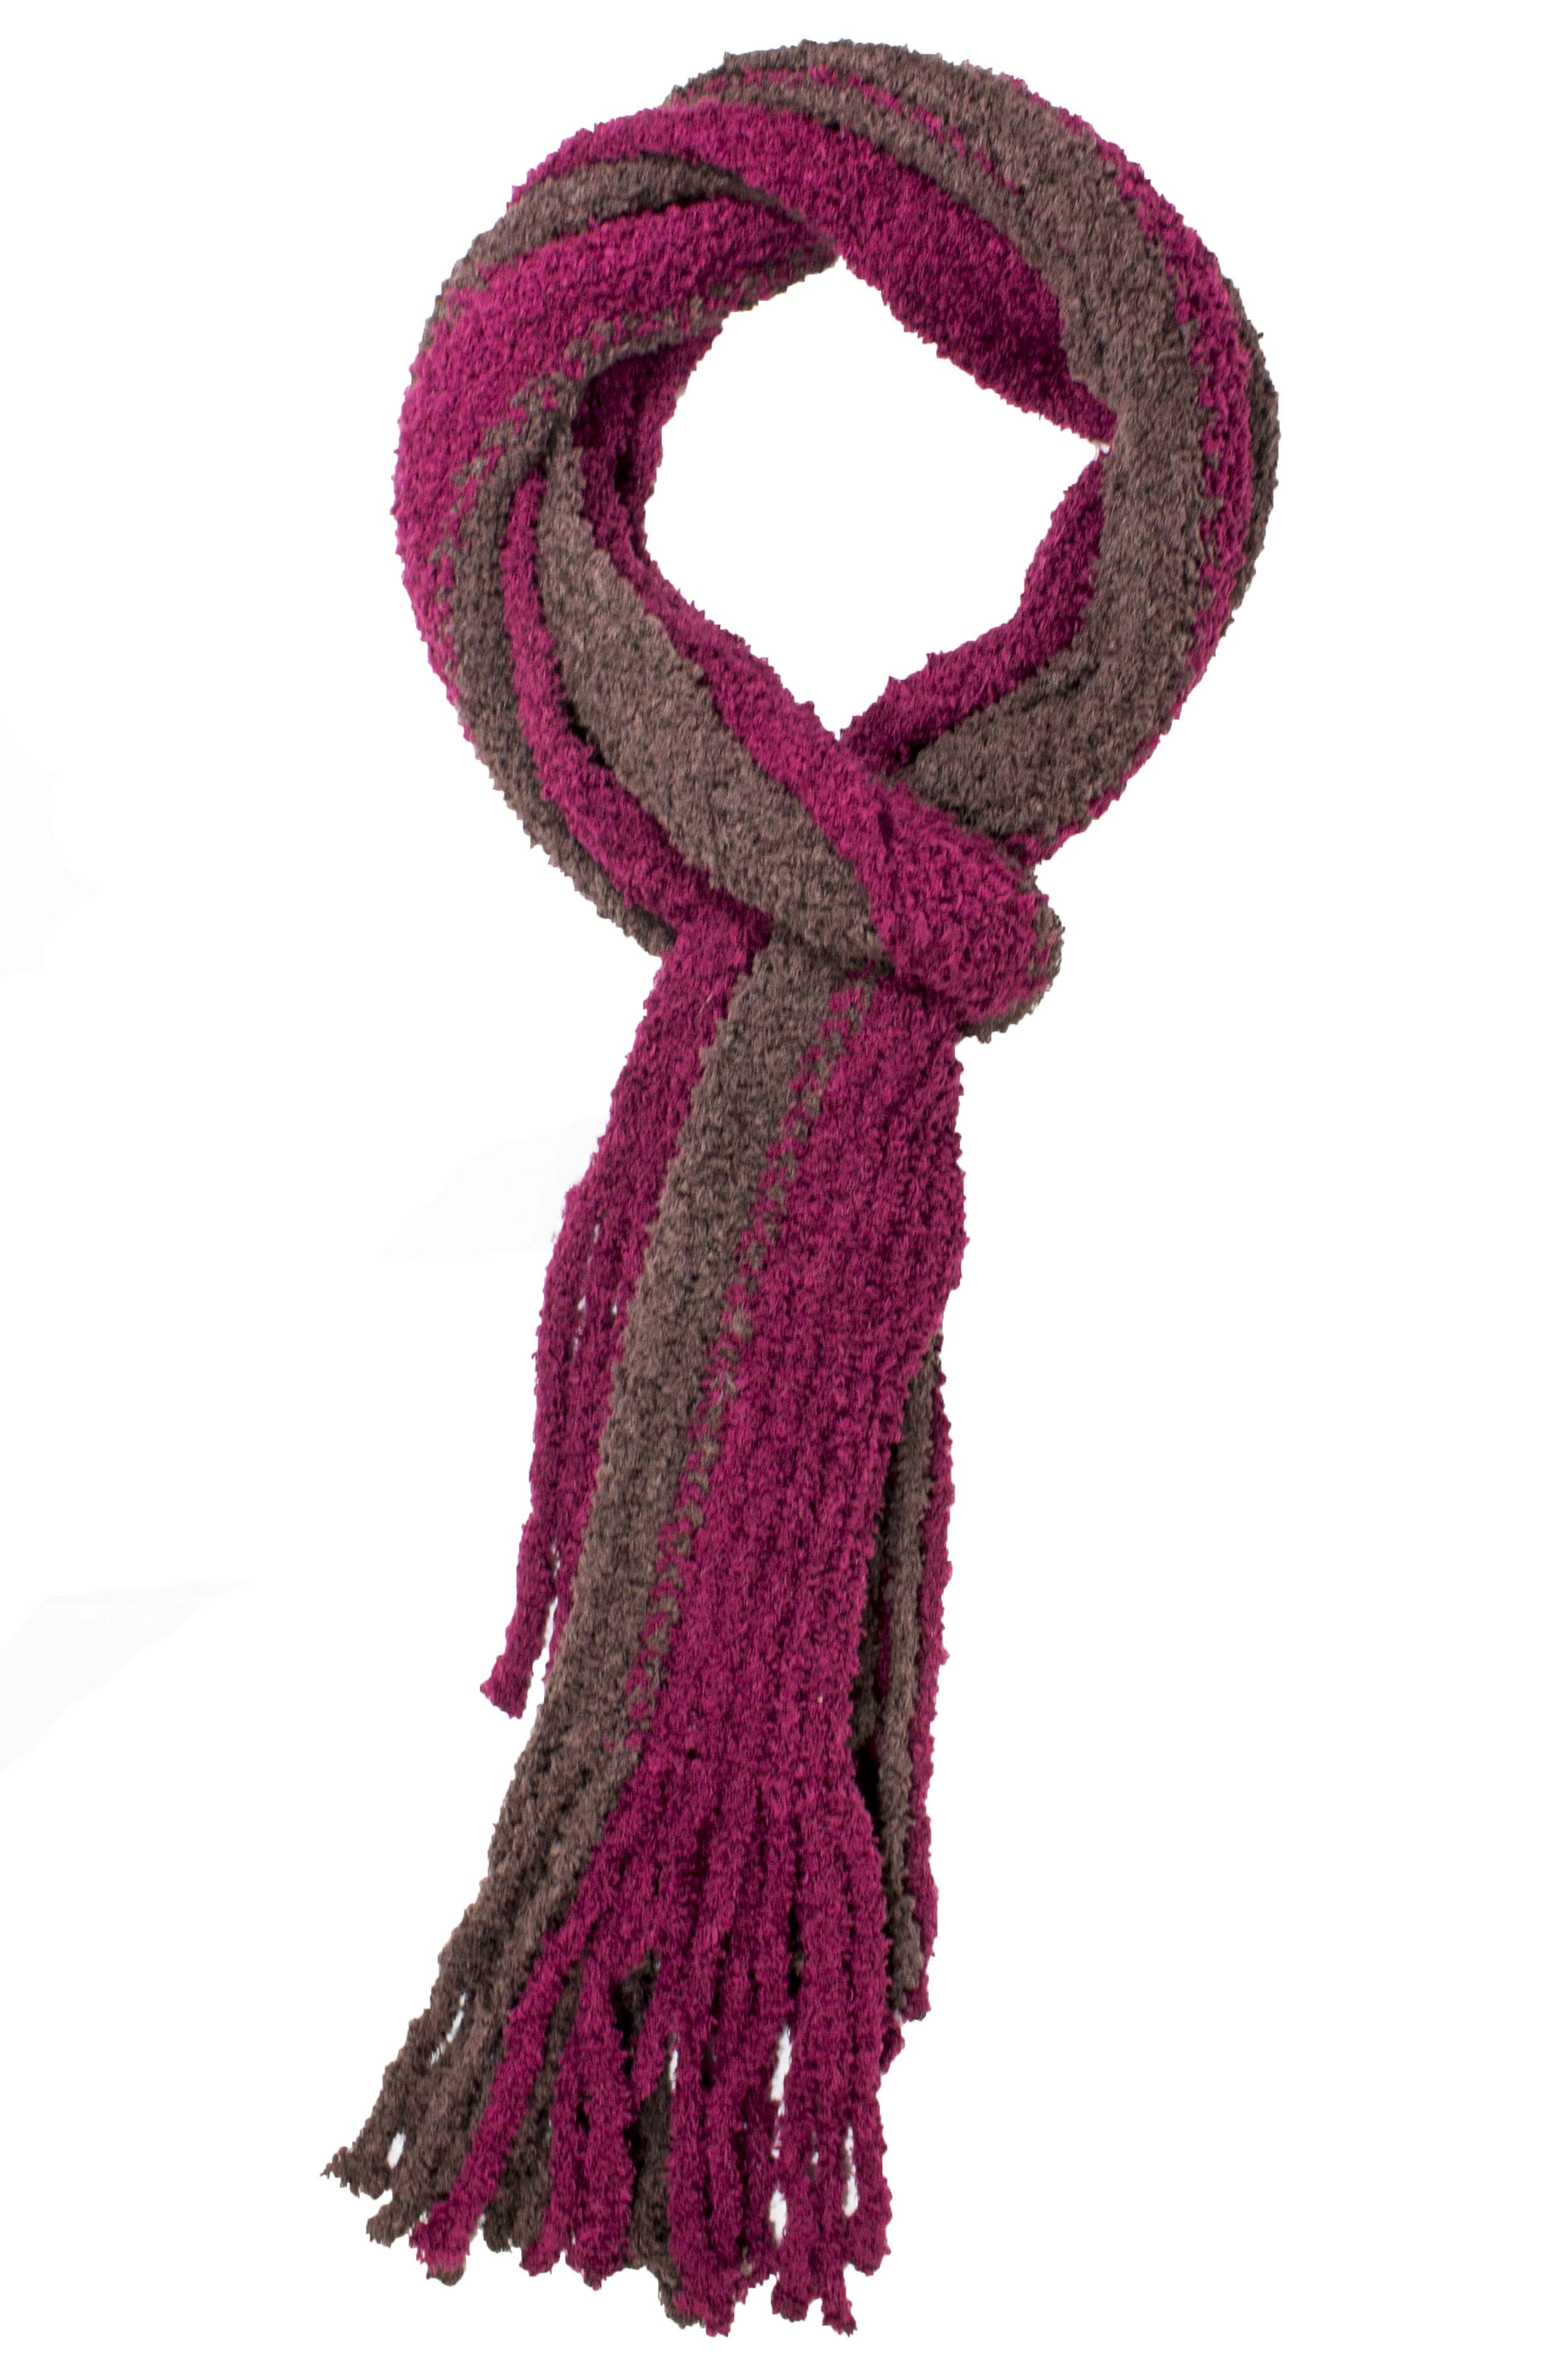 Kimberly Striped Fringe Neck Scarf Burgundy Brown